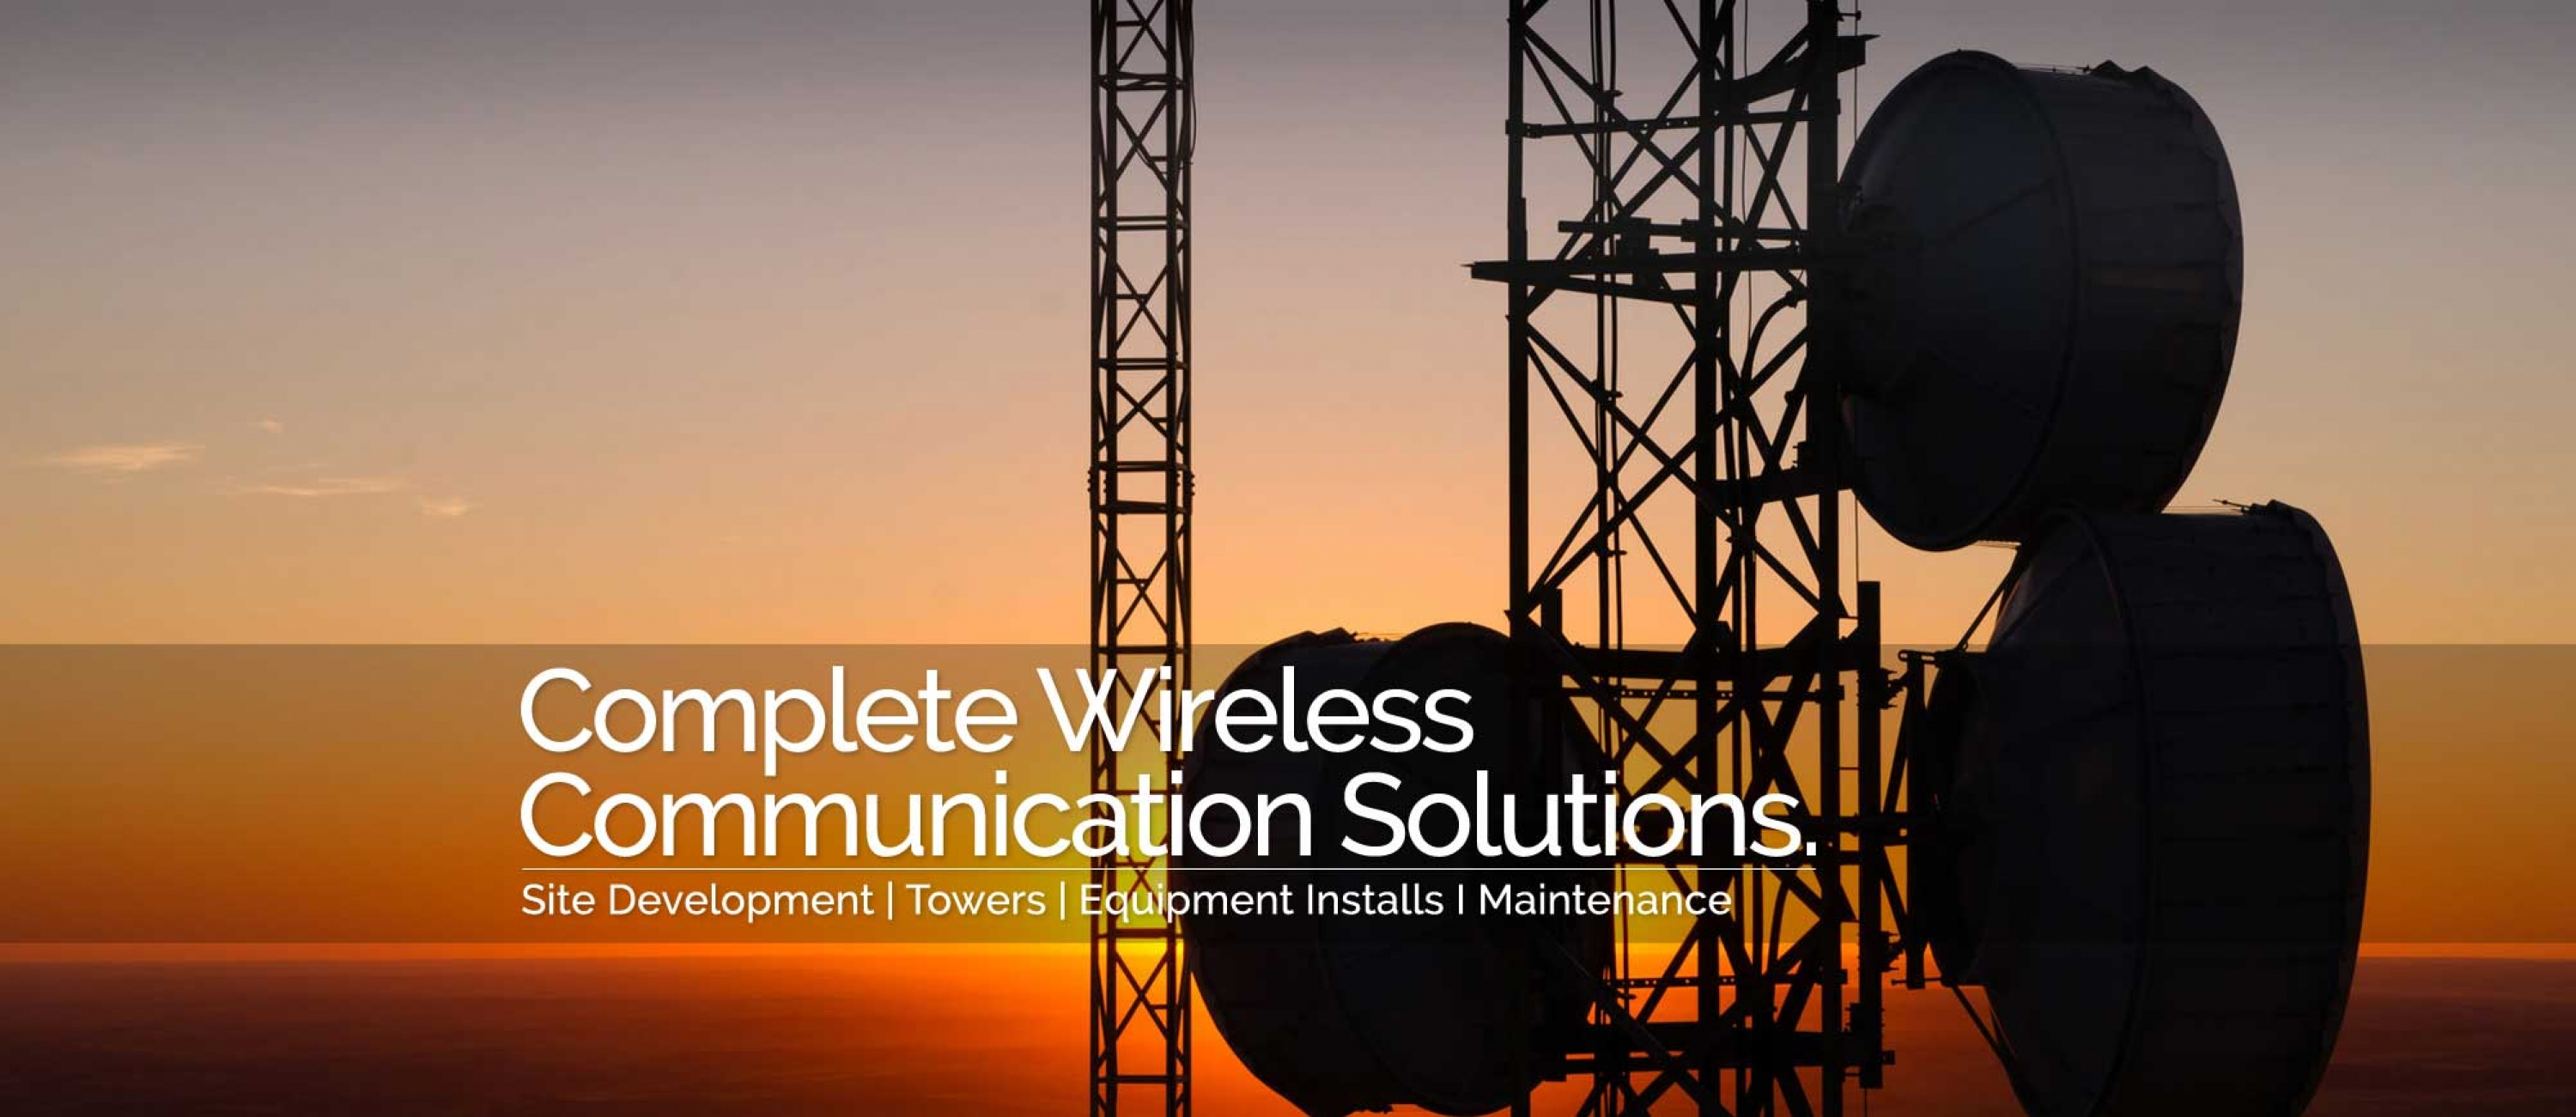 Complete wireless communications solutions. Think Hayden Tower Service.